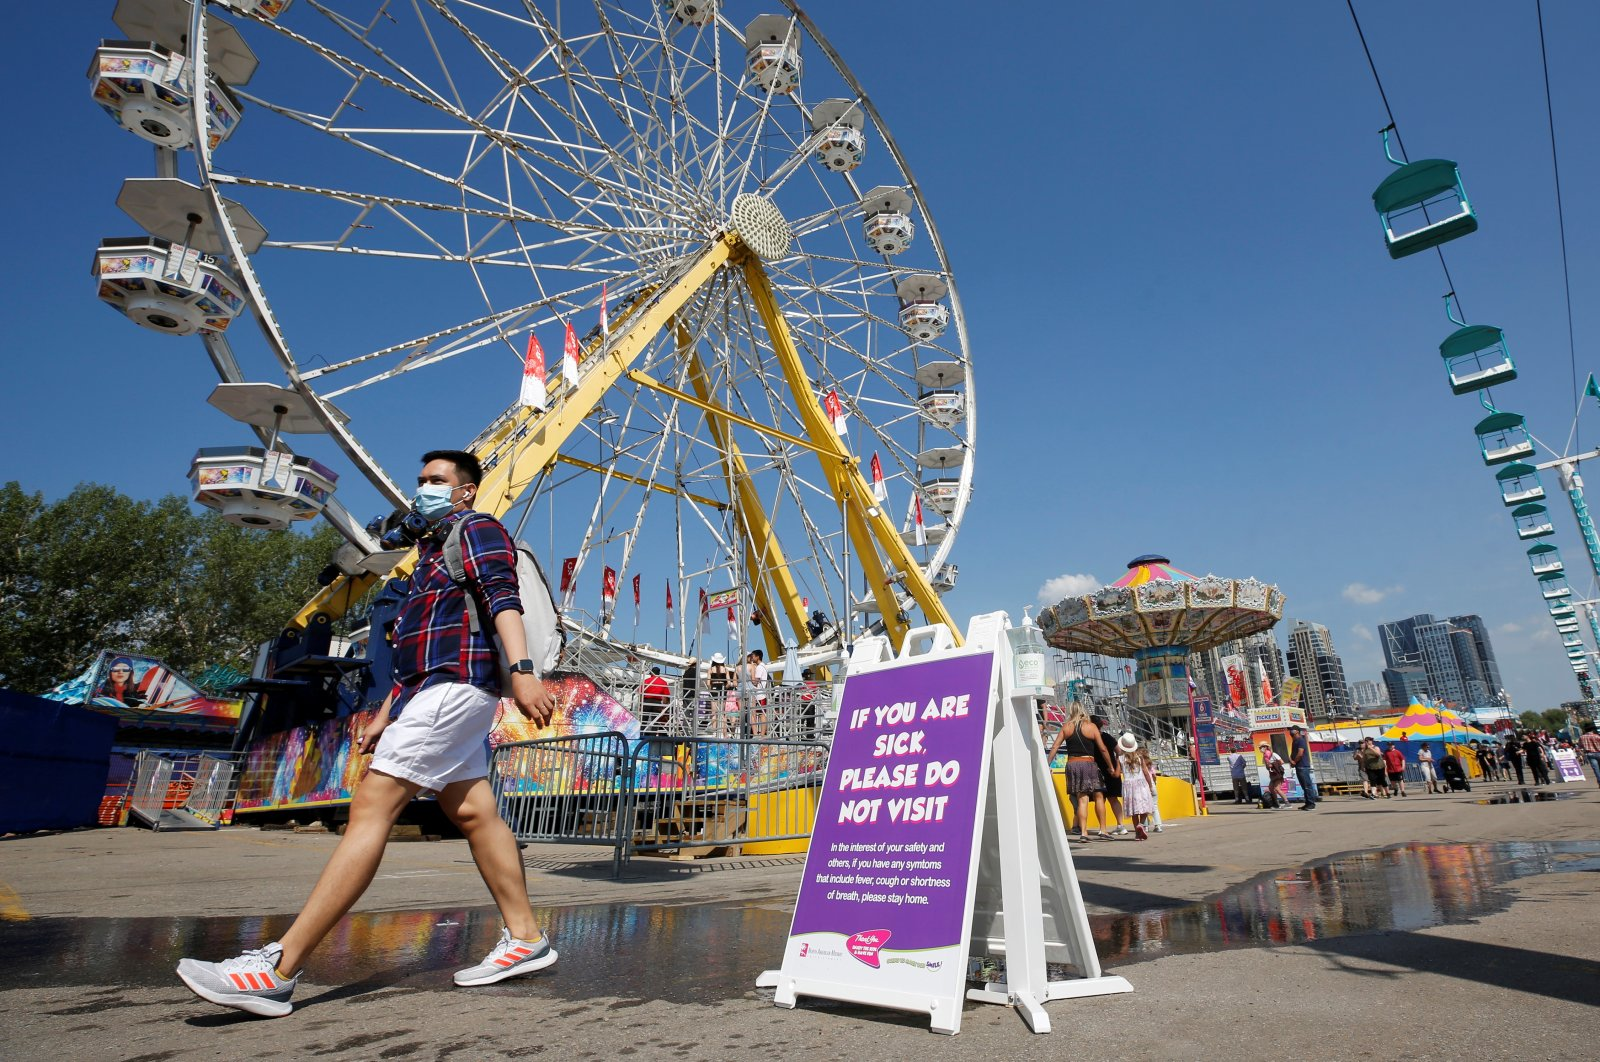 A man wearing a face mask walks by a health safety sign as the Calgary Stampede gets underway following a year off due to COVID-19 restrictions, Alberta, Canada, July 9, 2021. (Reuters Photo)